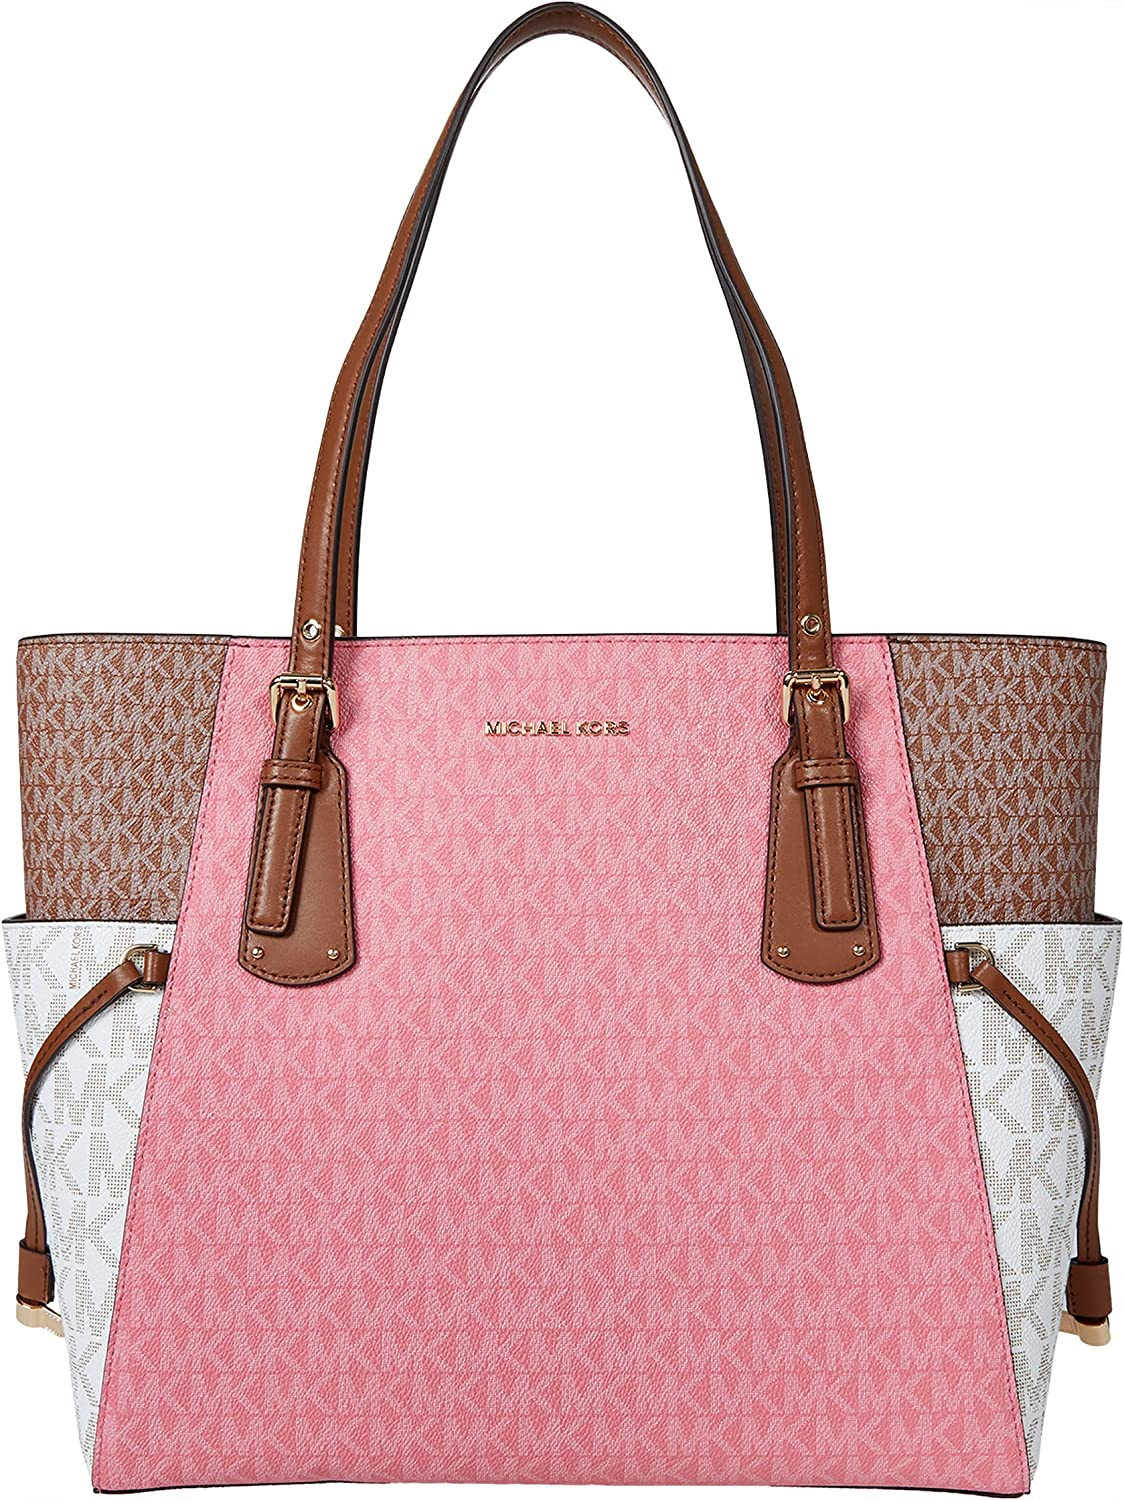 Michael Kors Voyager East/West Tote Tea Rose Multi One Size